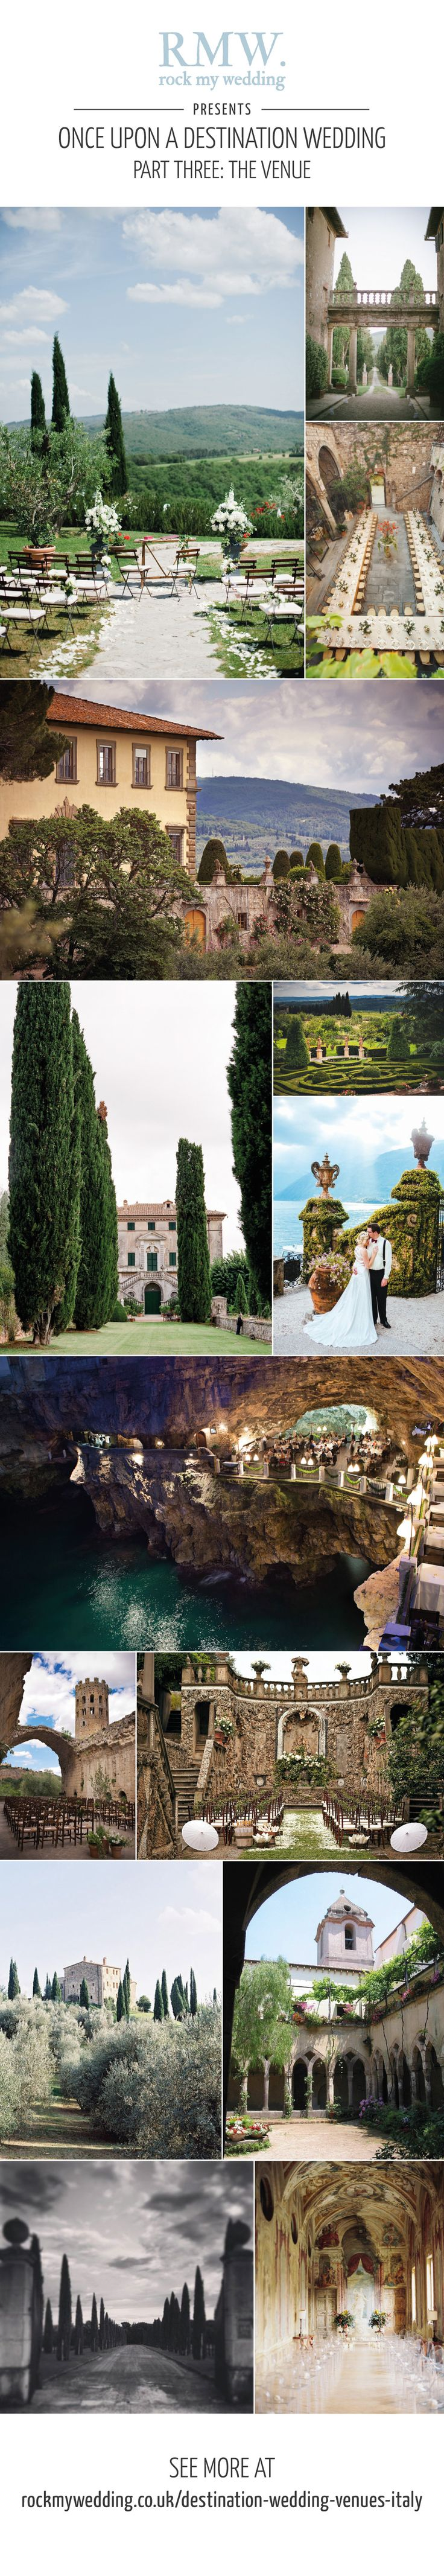 Destination wedding venues in Italy | http://www.rockmywedding.co.uk/destination-wedding-venues-italy/